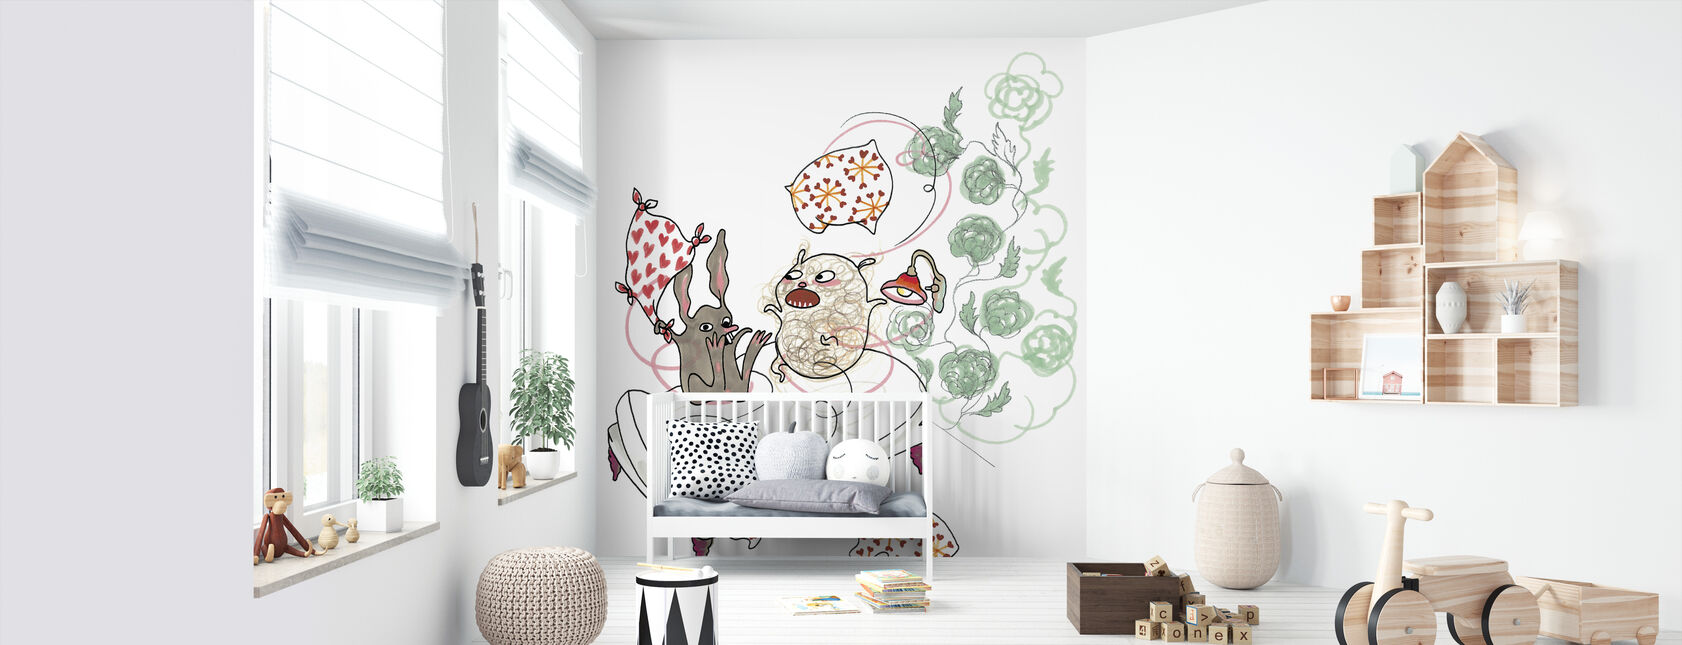 who does not sleep - Wallpaper - Nursery